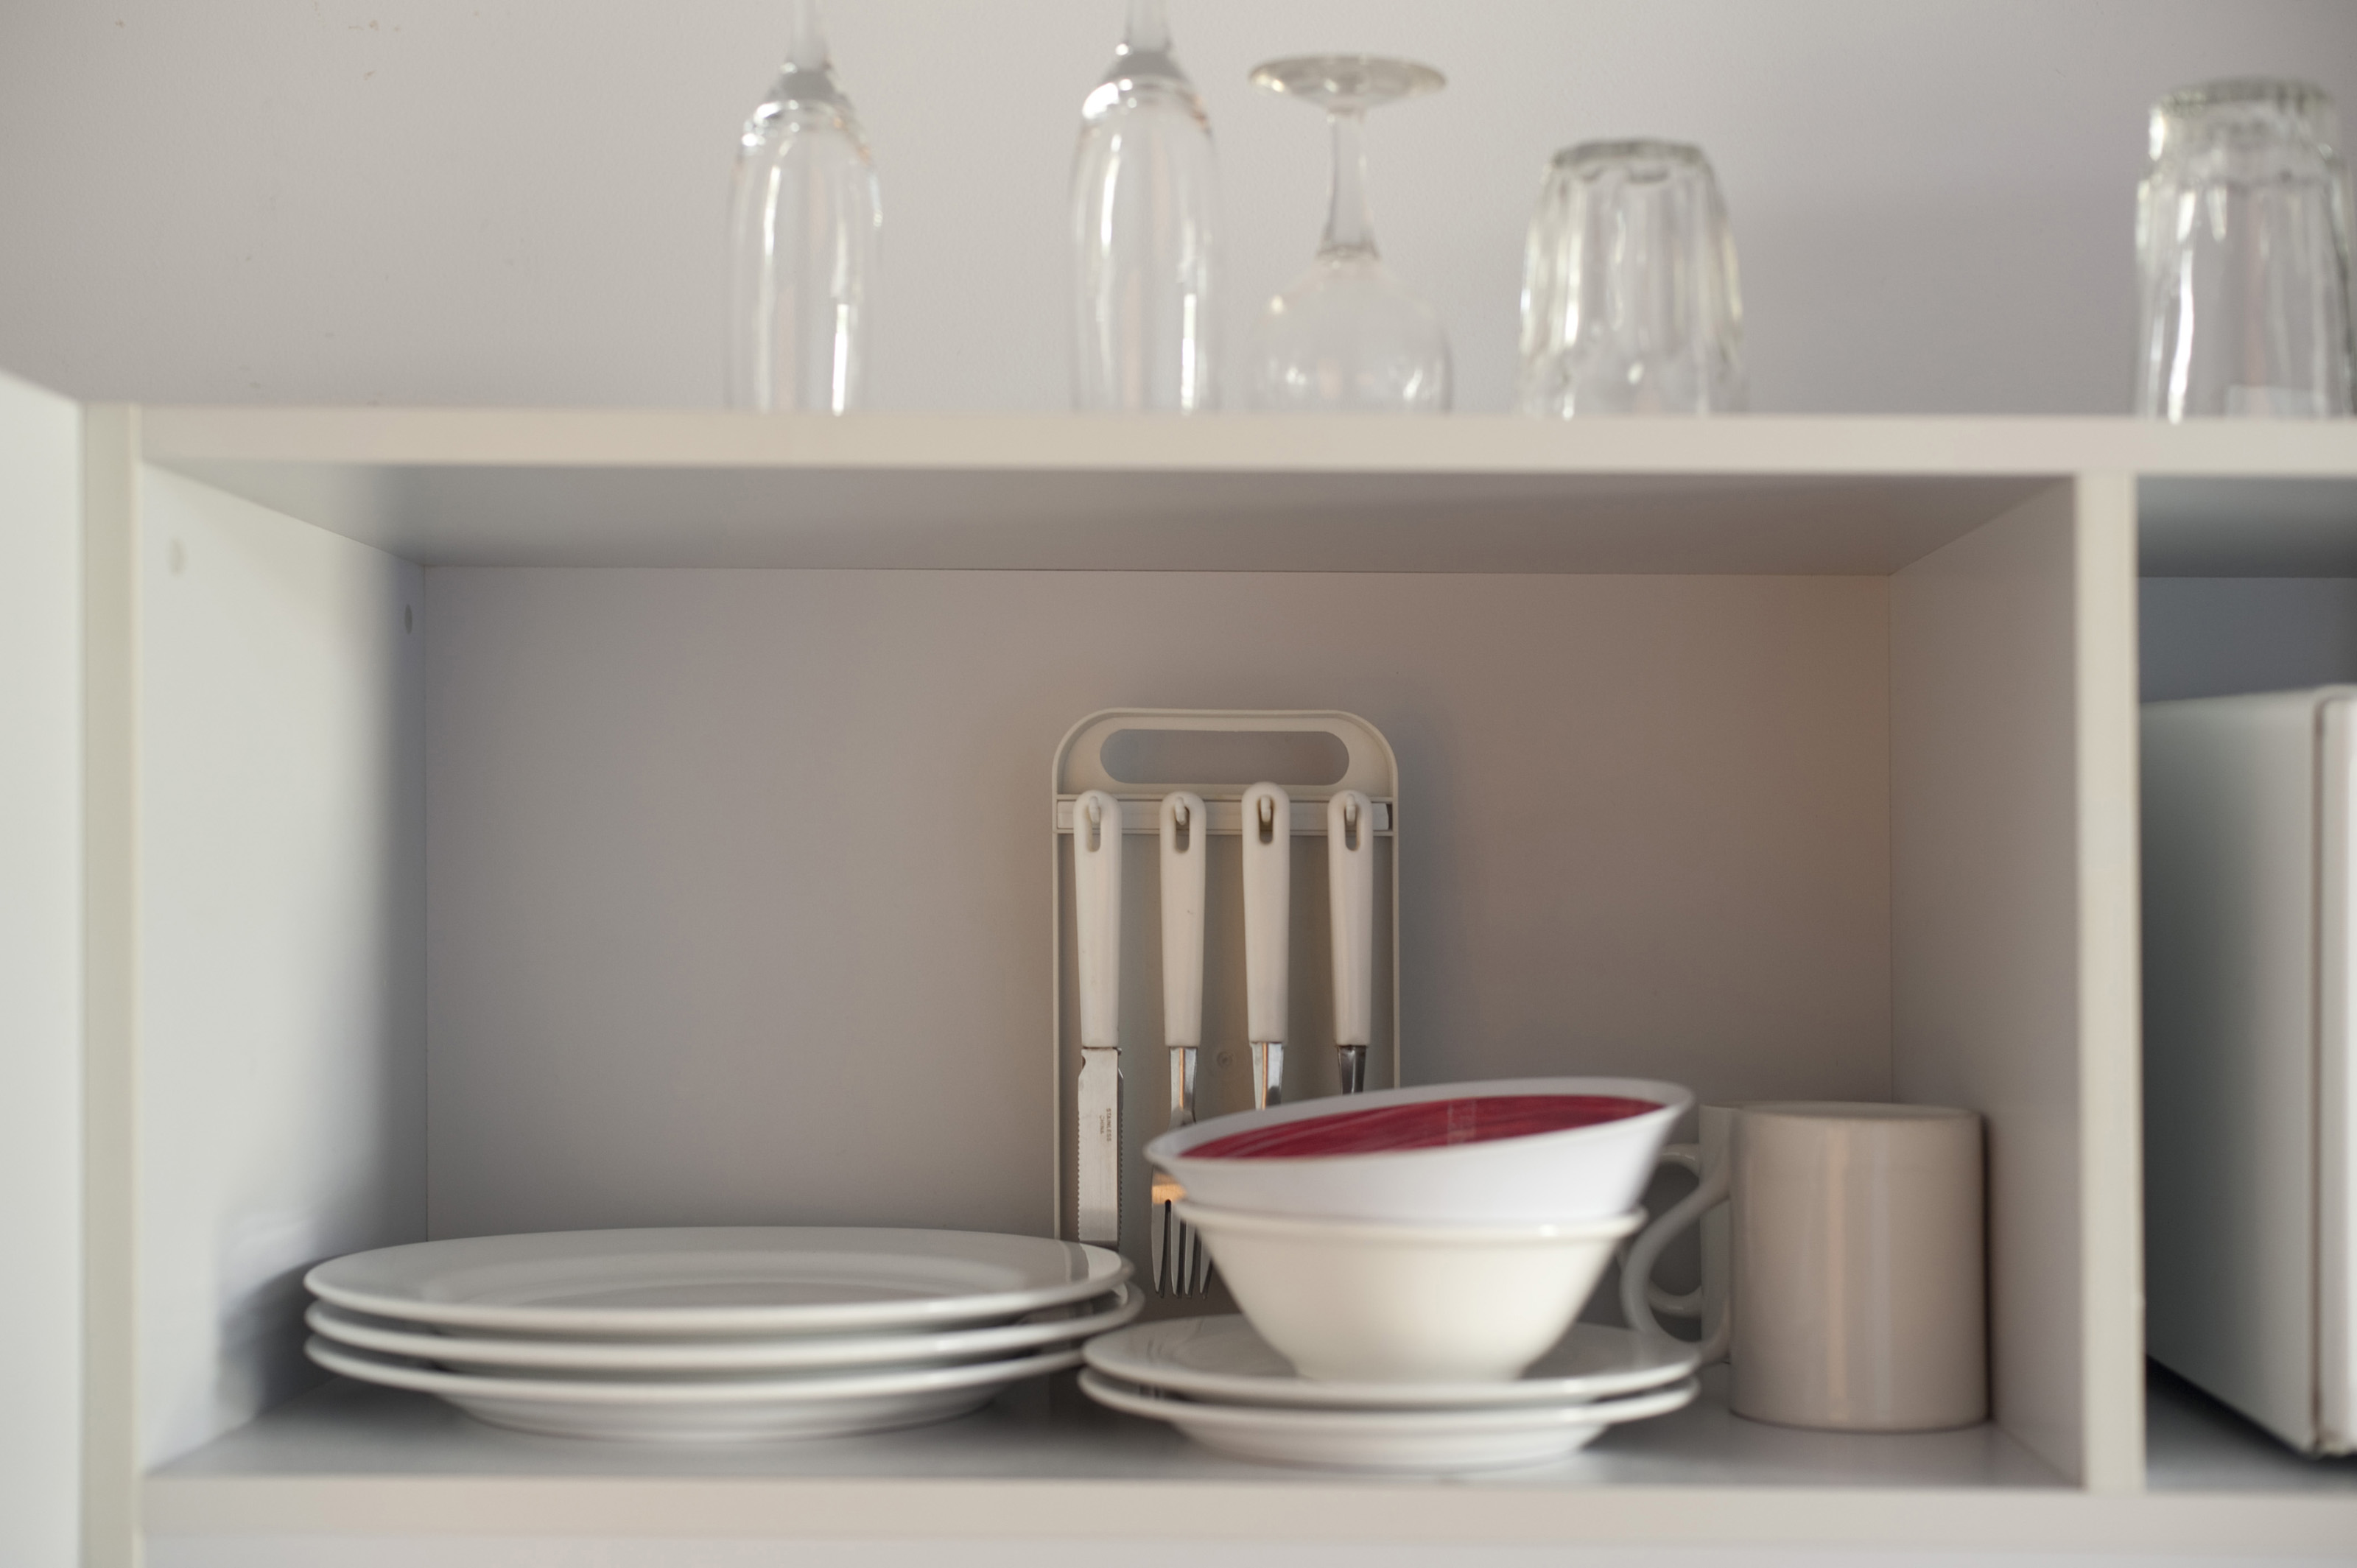 Kitchen Stand Designs : Free stock photo open kitchen shelves with crockery